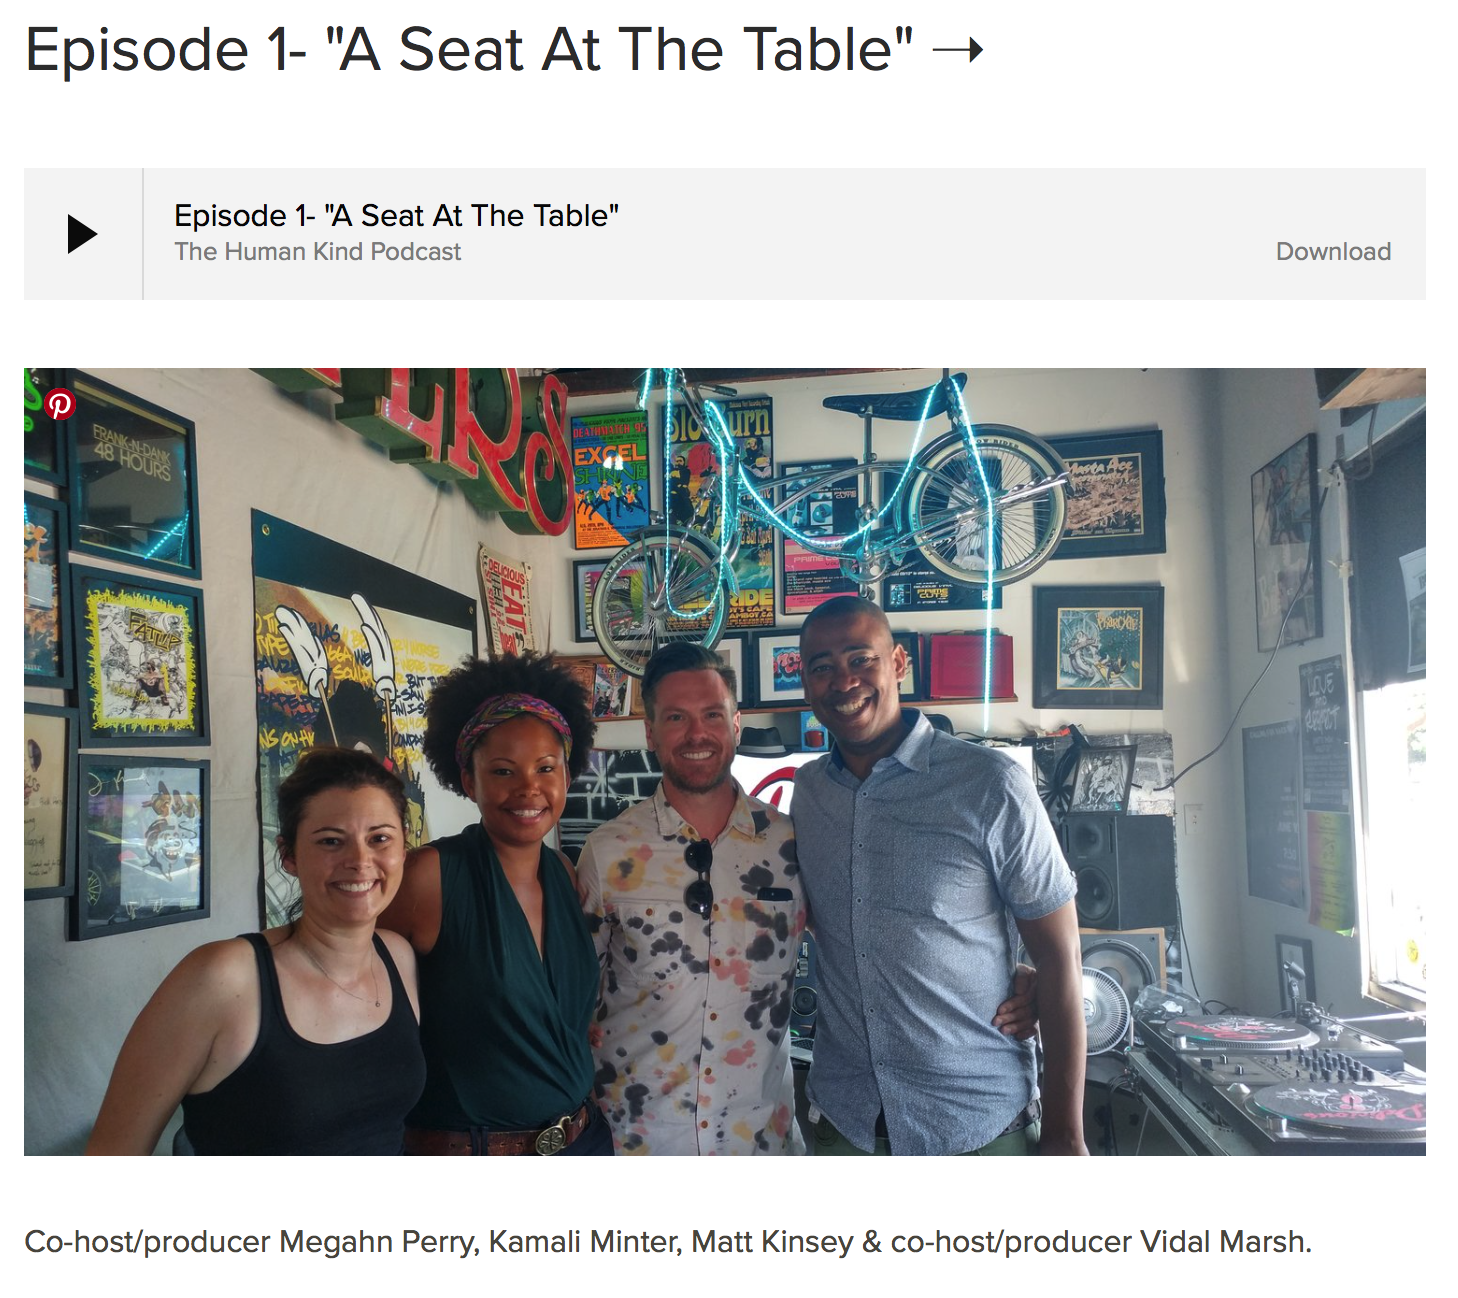 I had the honor of participating in a podcast project about Race called the Human Kind project. It was good to be a part of an honest, thoughtful, and candid conversation about race between people of different backgrounds.... Scroll down to Episode 01: A seat at the table to listen.